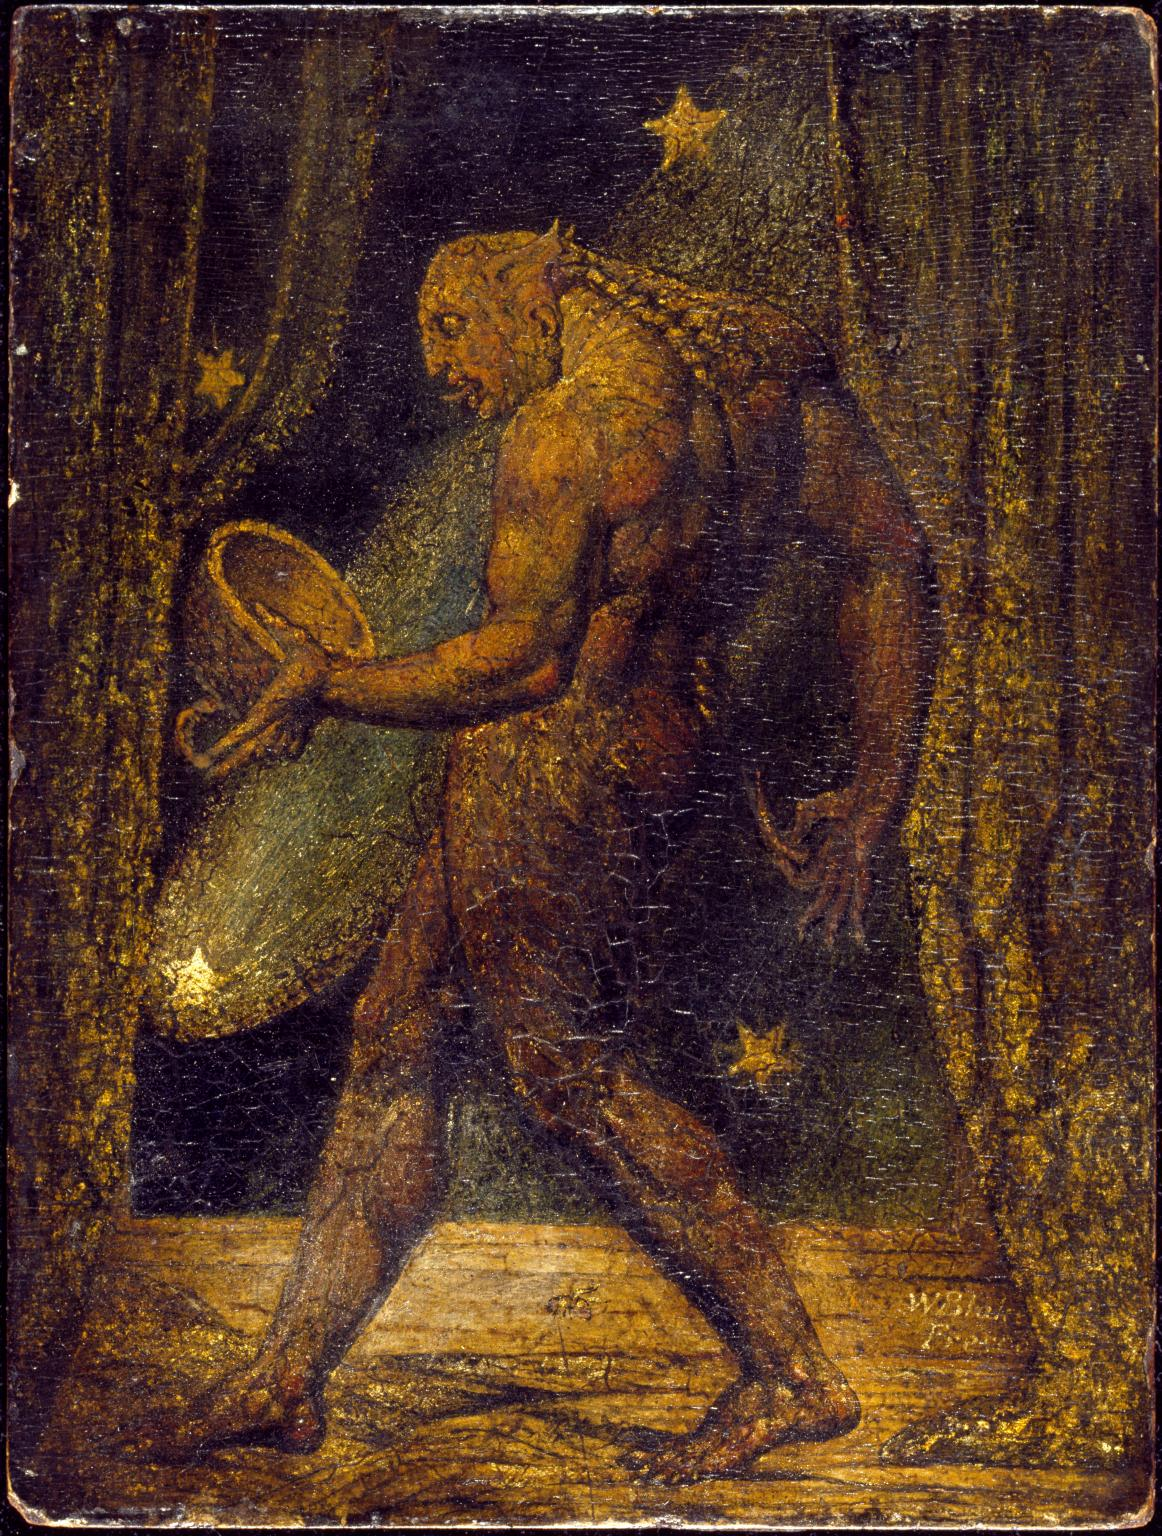 File:William Blake 002.jpg